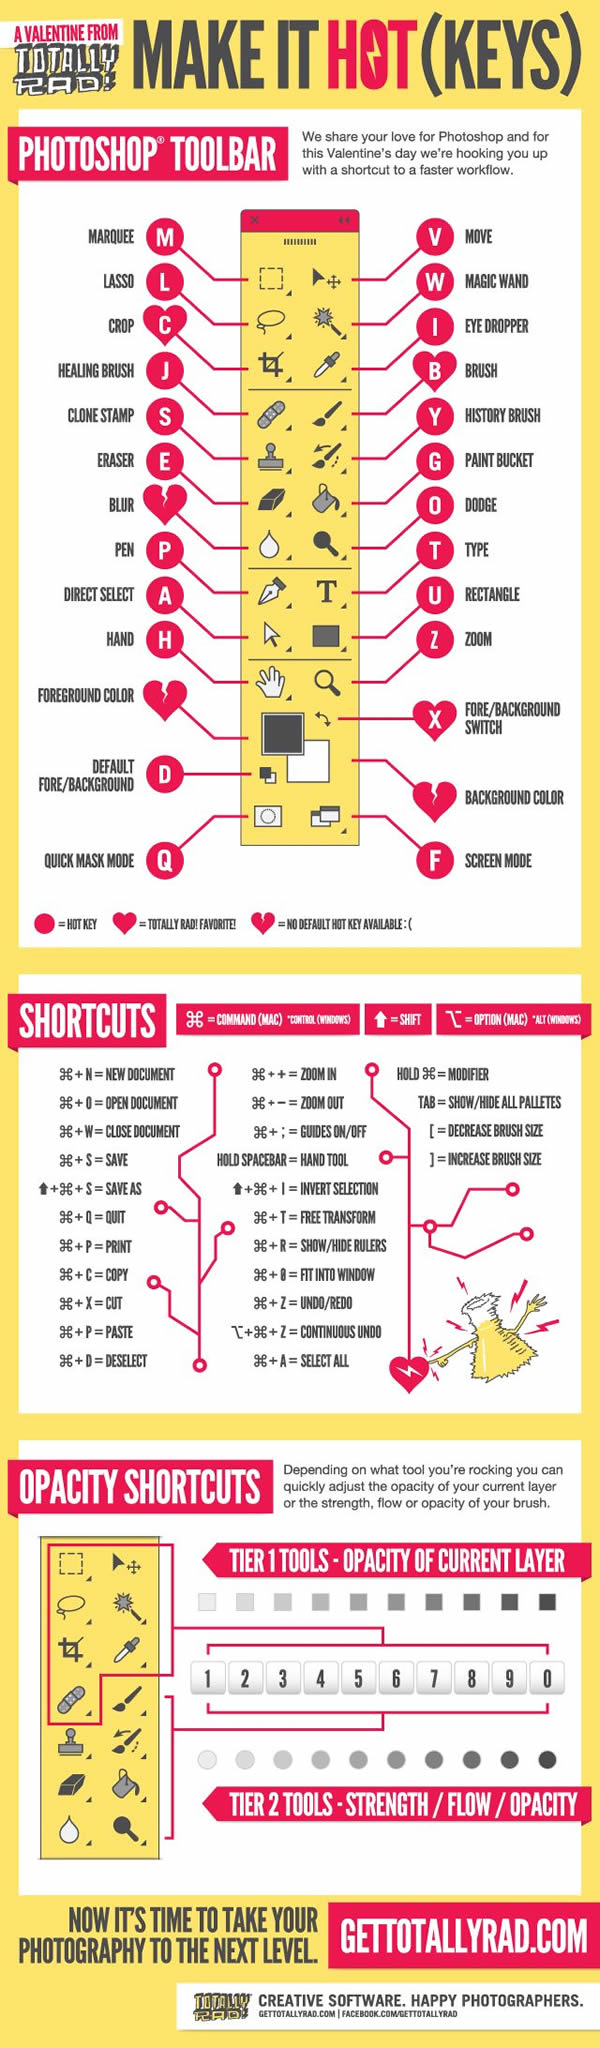 lighting diagrams for portrait photography 1998 jeep grand cherokee ignition coil wiring diagram 25 most useful cheat sheets – part2 - 121clicks.com